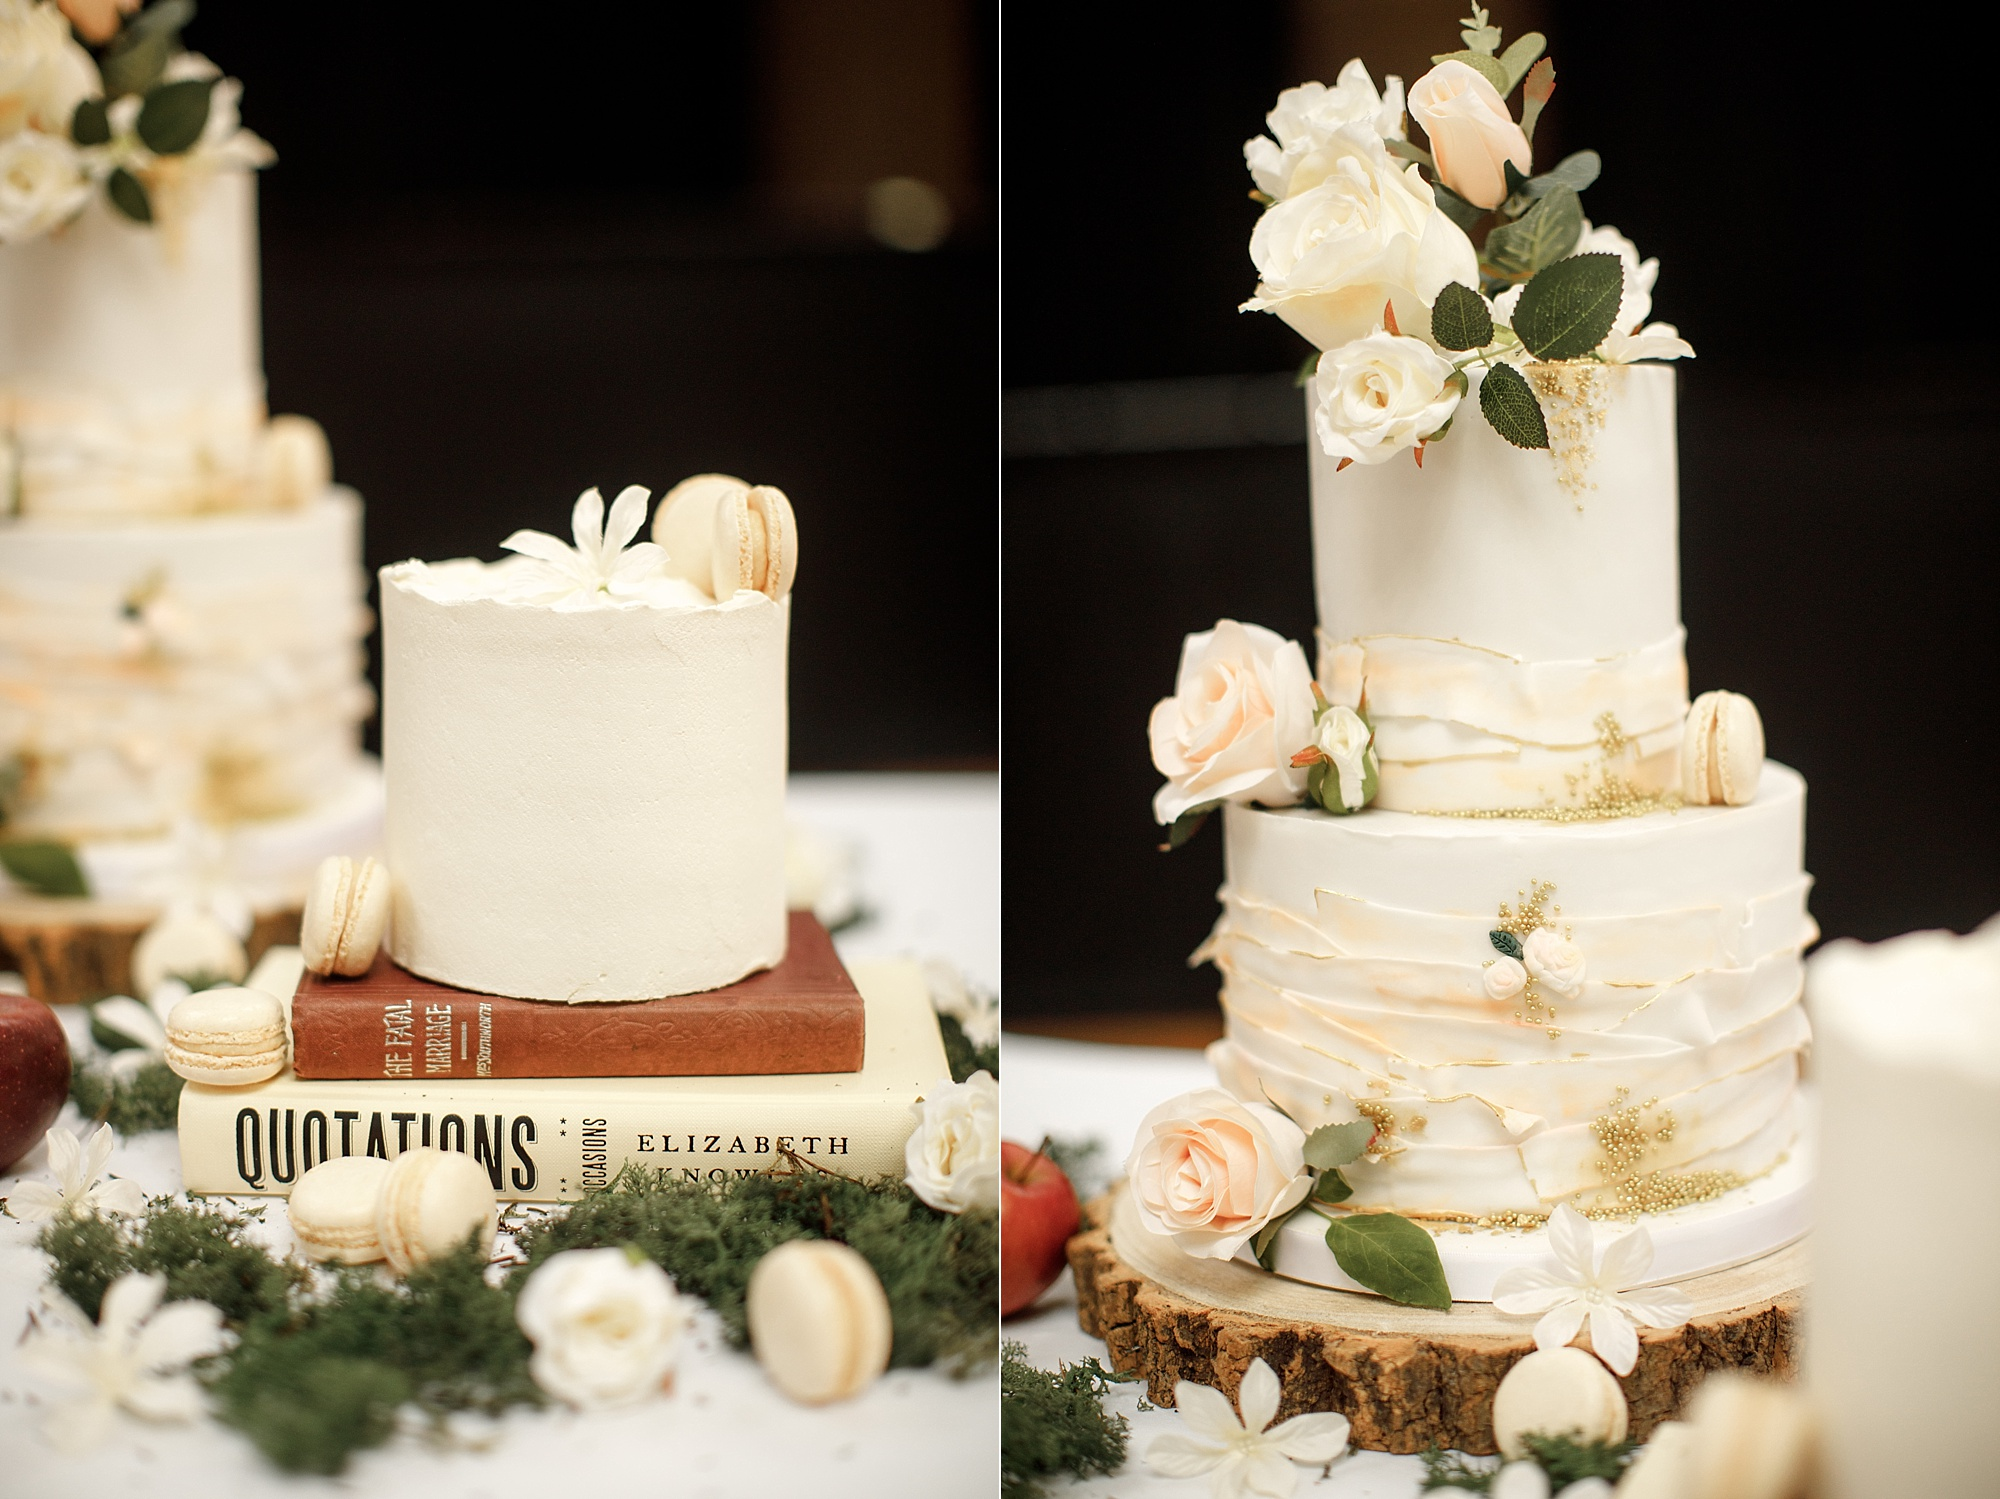 Wedding cake details photography at Devonshire Dome